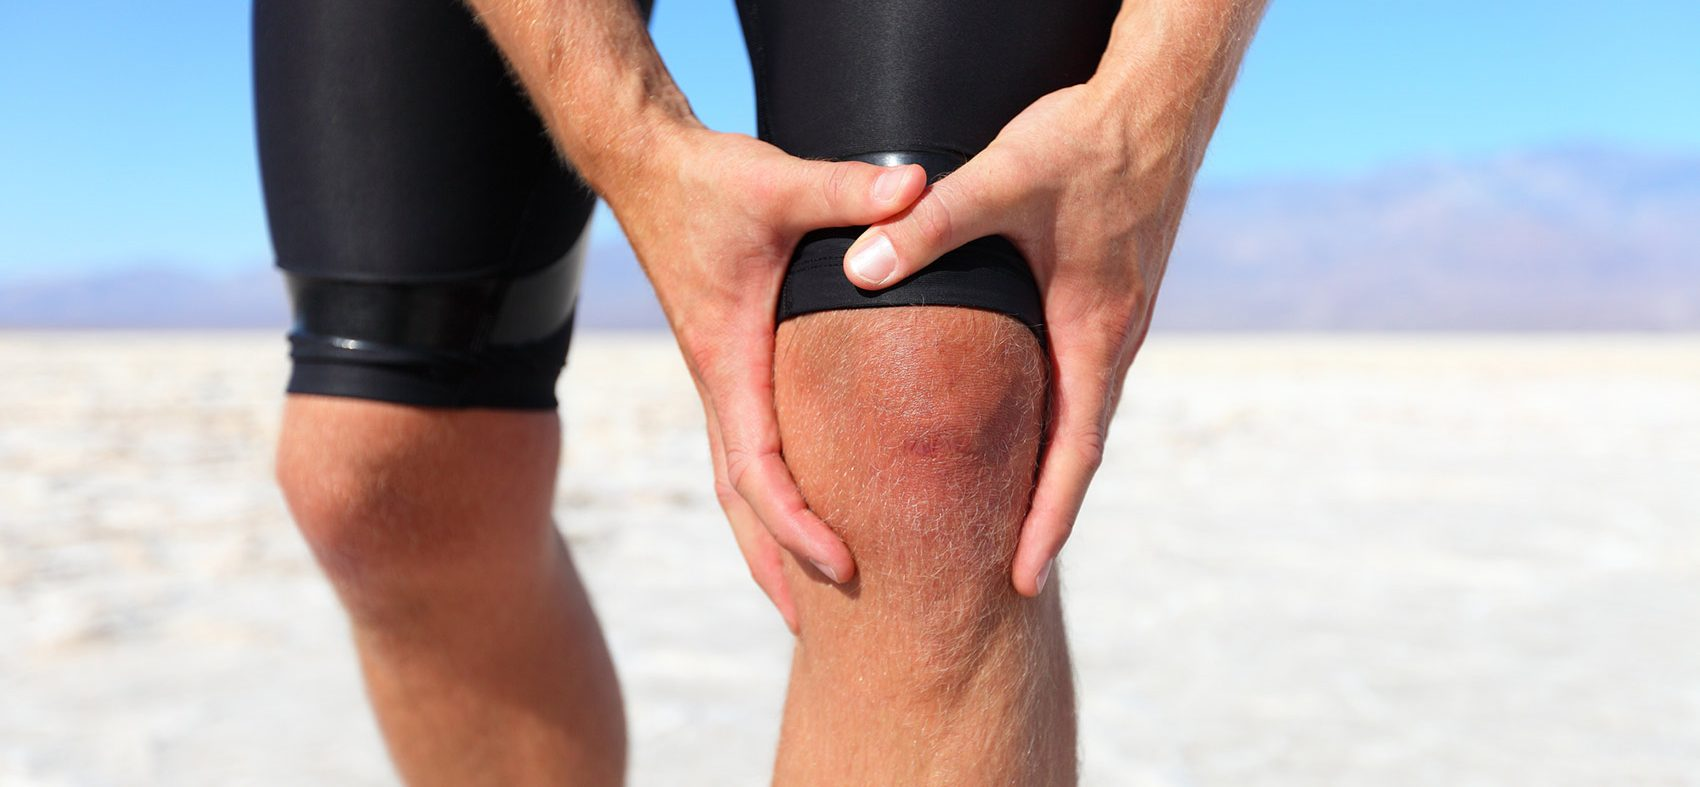 Sports Injury and Rehabilitation